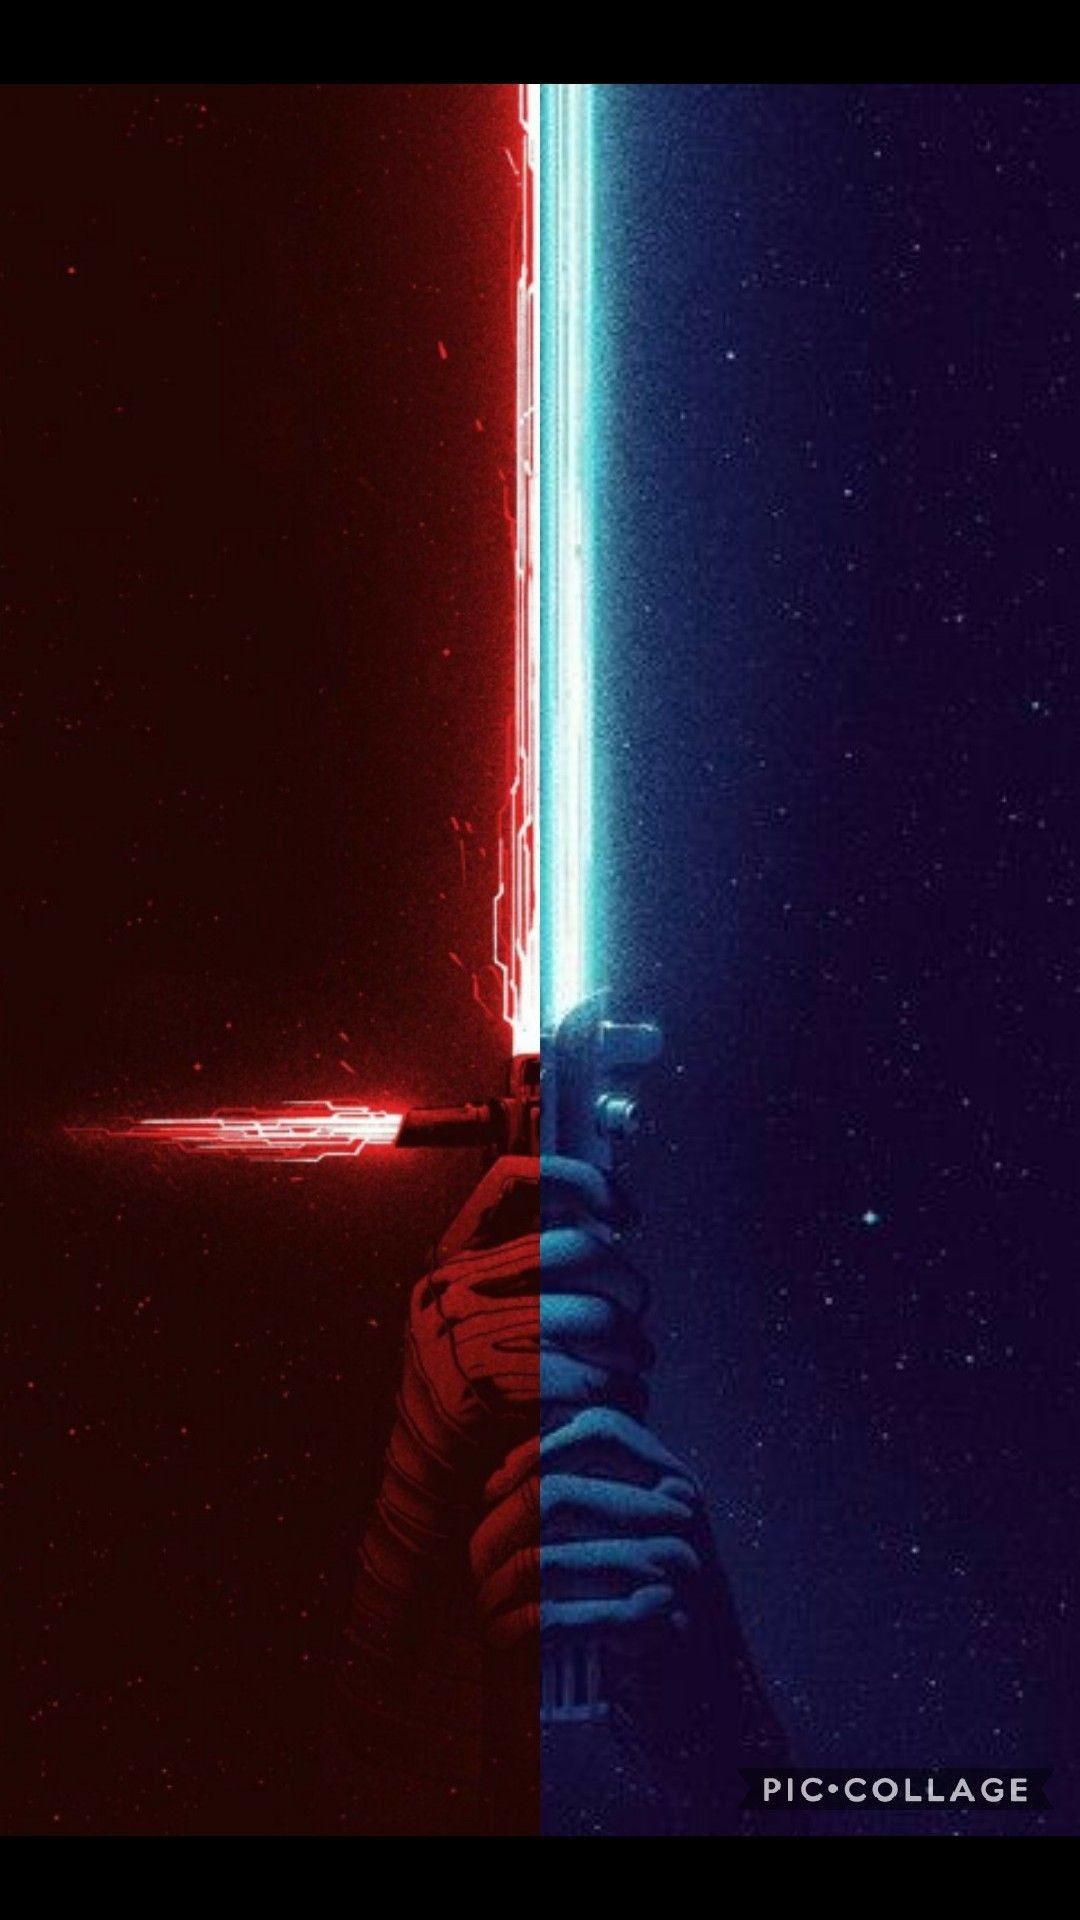 1080x1920 The Full One Of Kylo S Saber Is My Phone Star Wars Wallpaper Lightsaber 1080x1920 Wallpaper Teahub Io